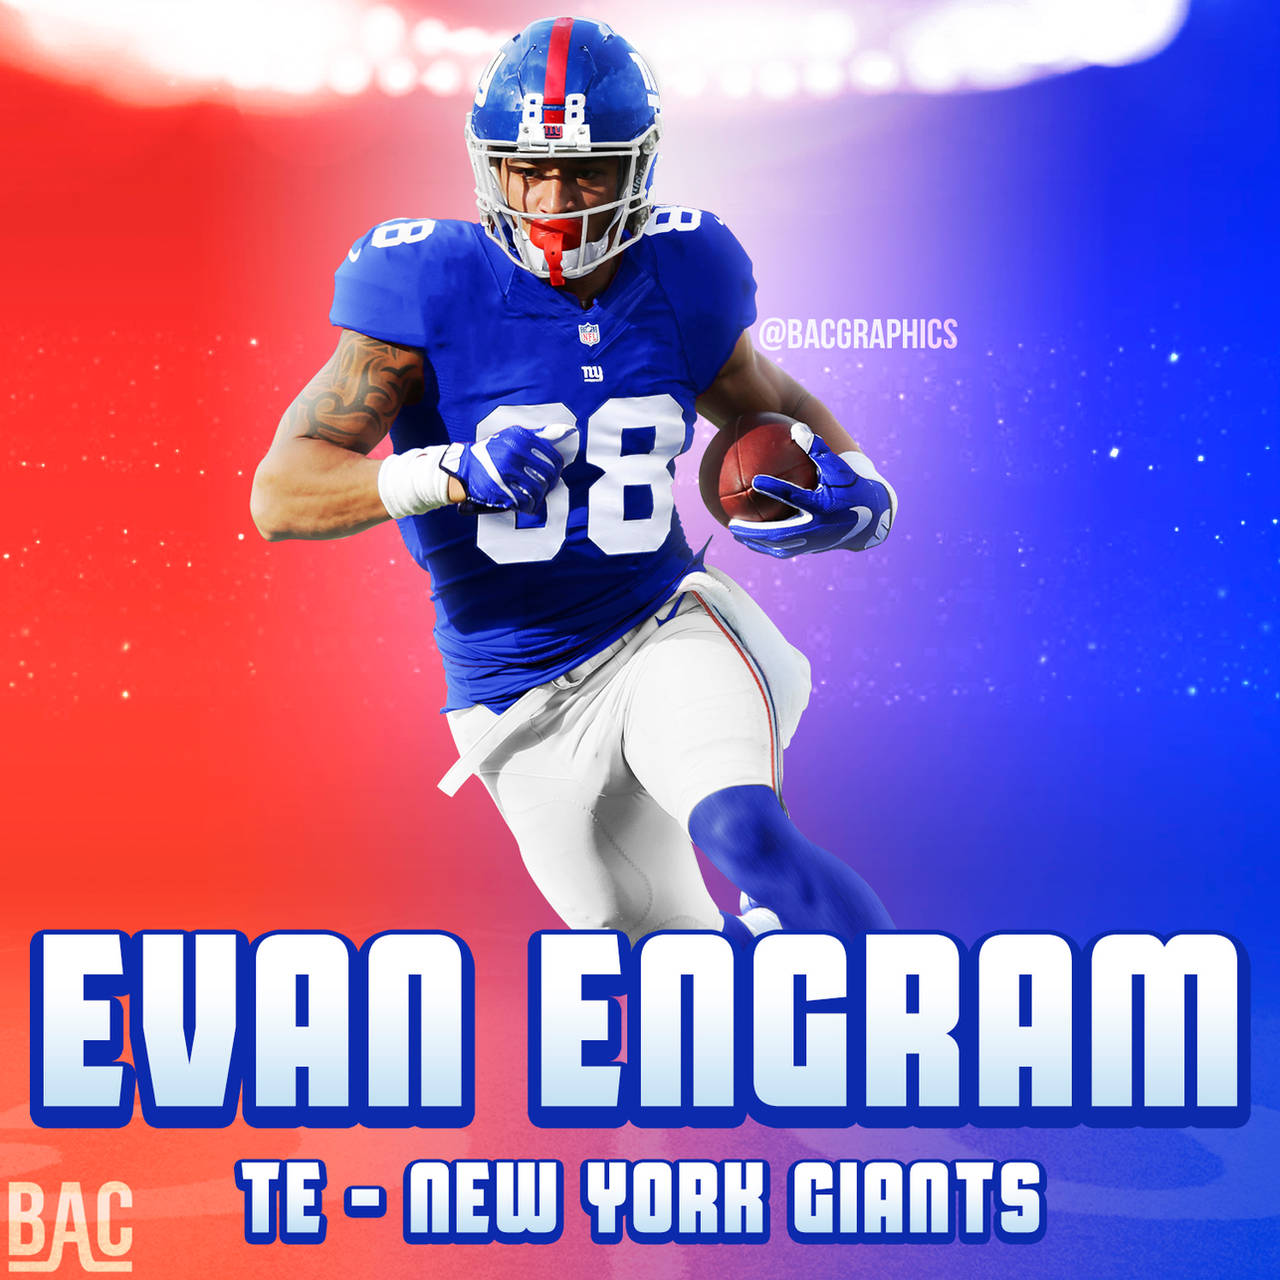 Evan Engram New York Giants Jersey Swap by BacGraphics on DeviantArt 223b5ad60